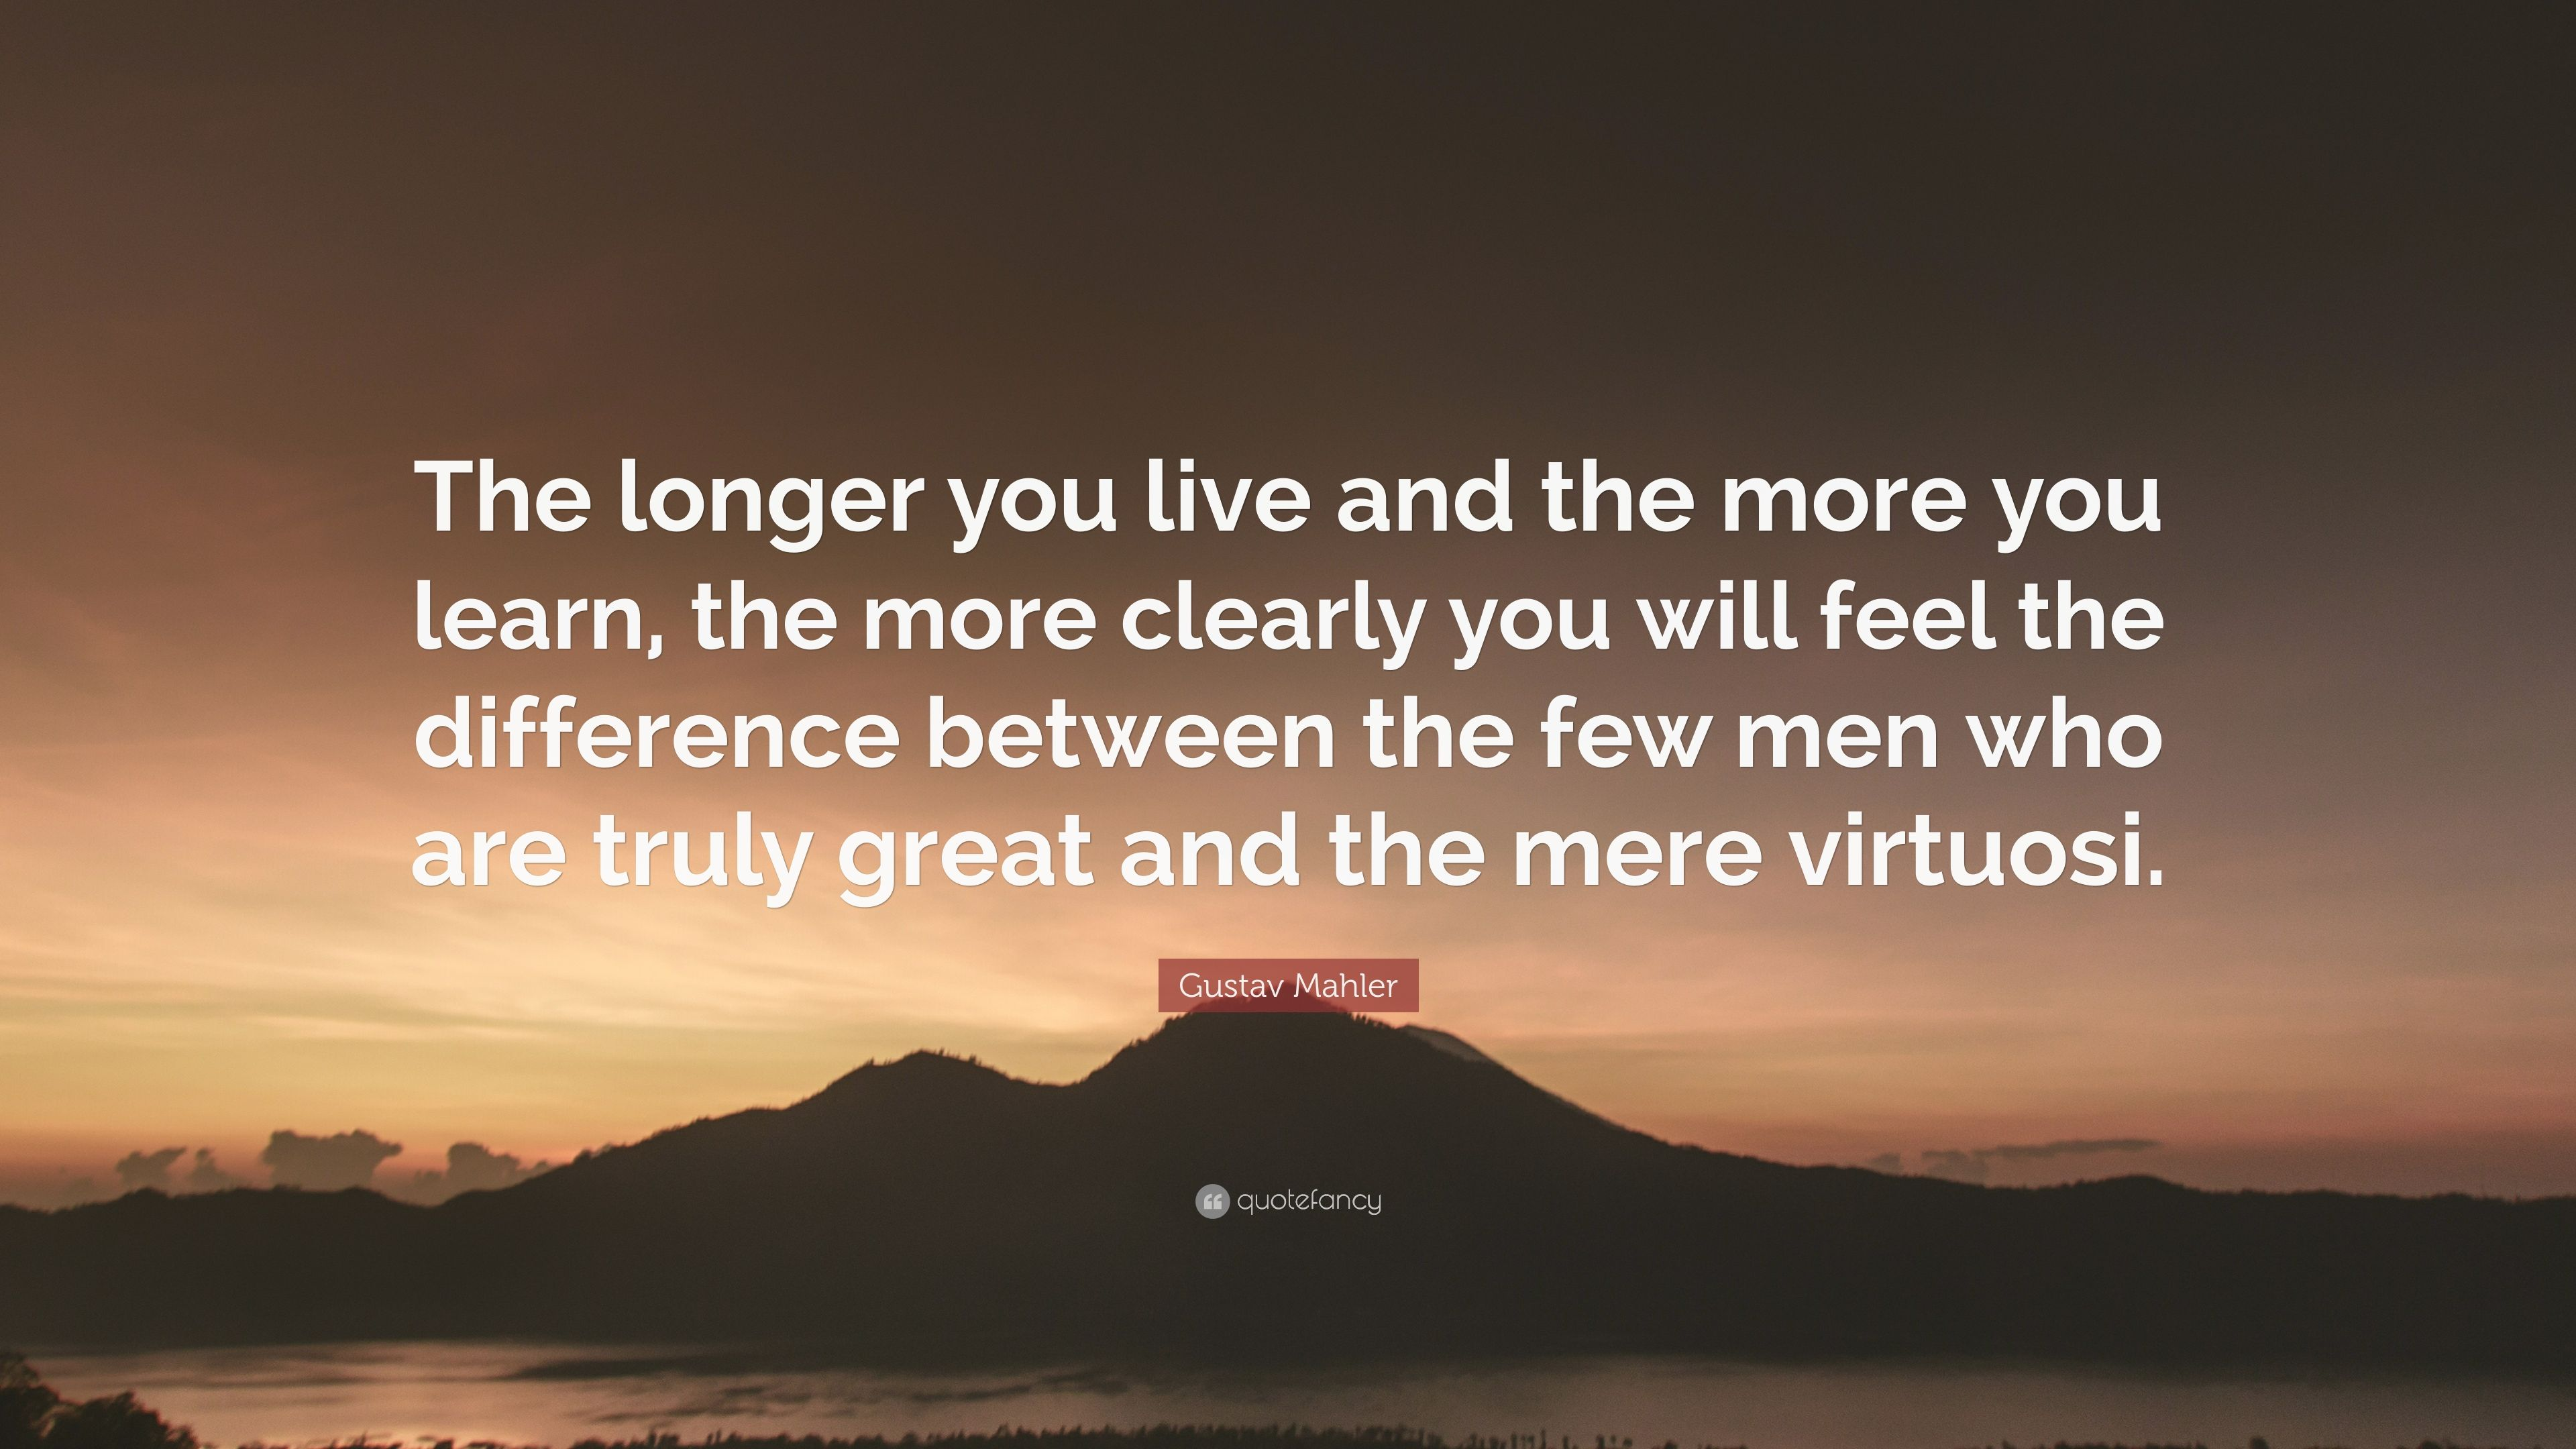 Gustav Mahler Quote The Longer You Live And The More You Learn